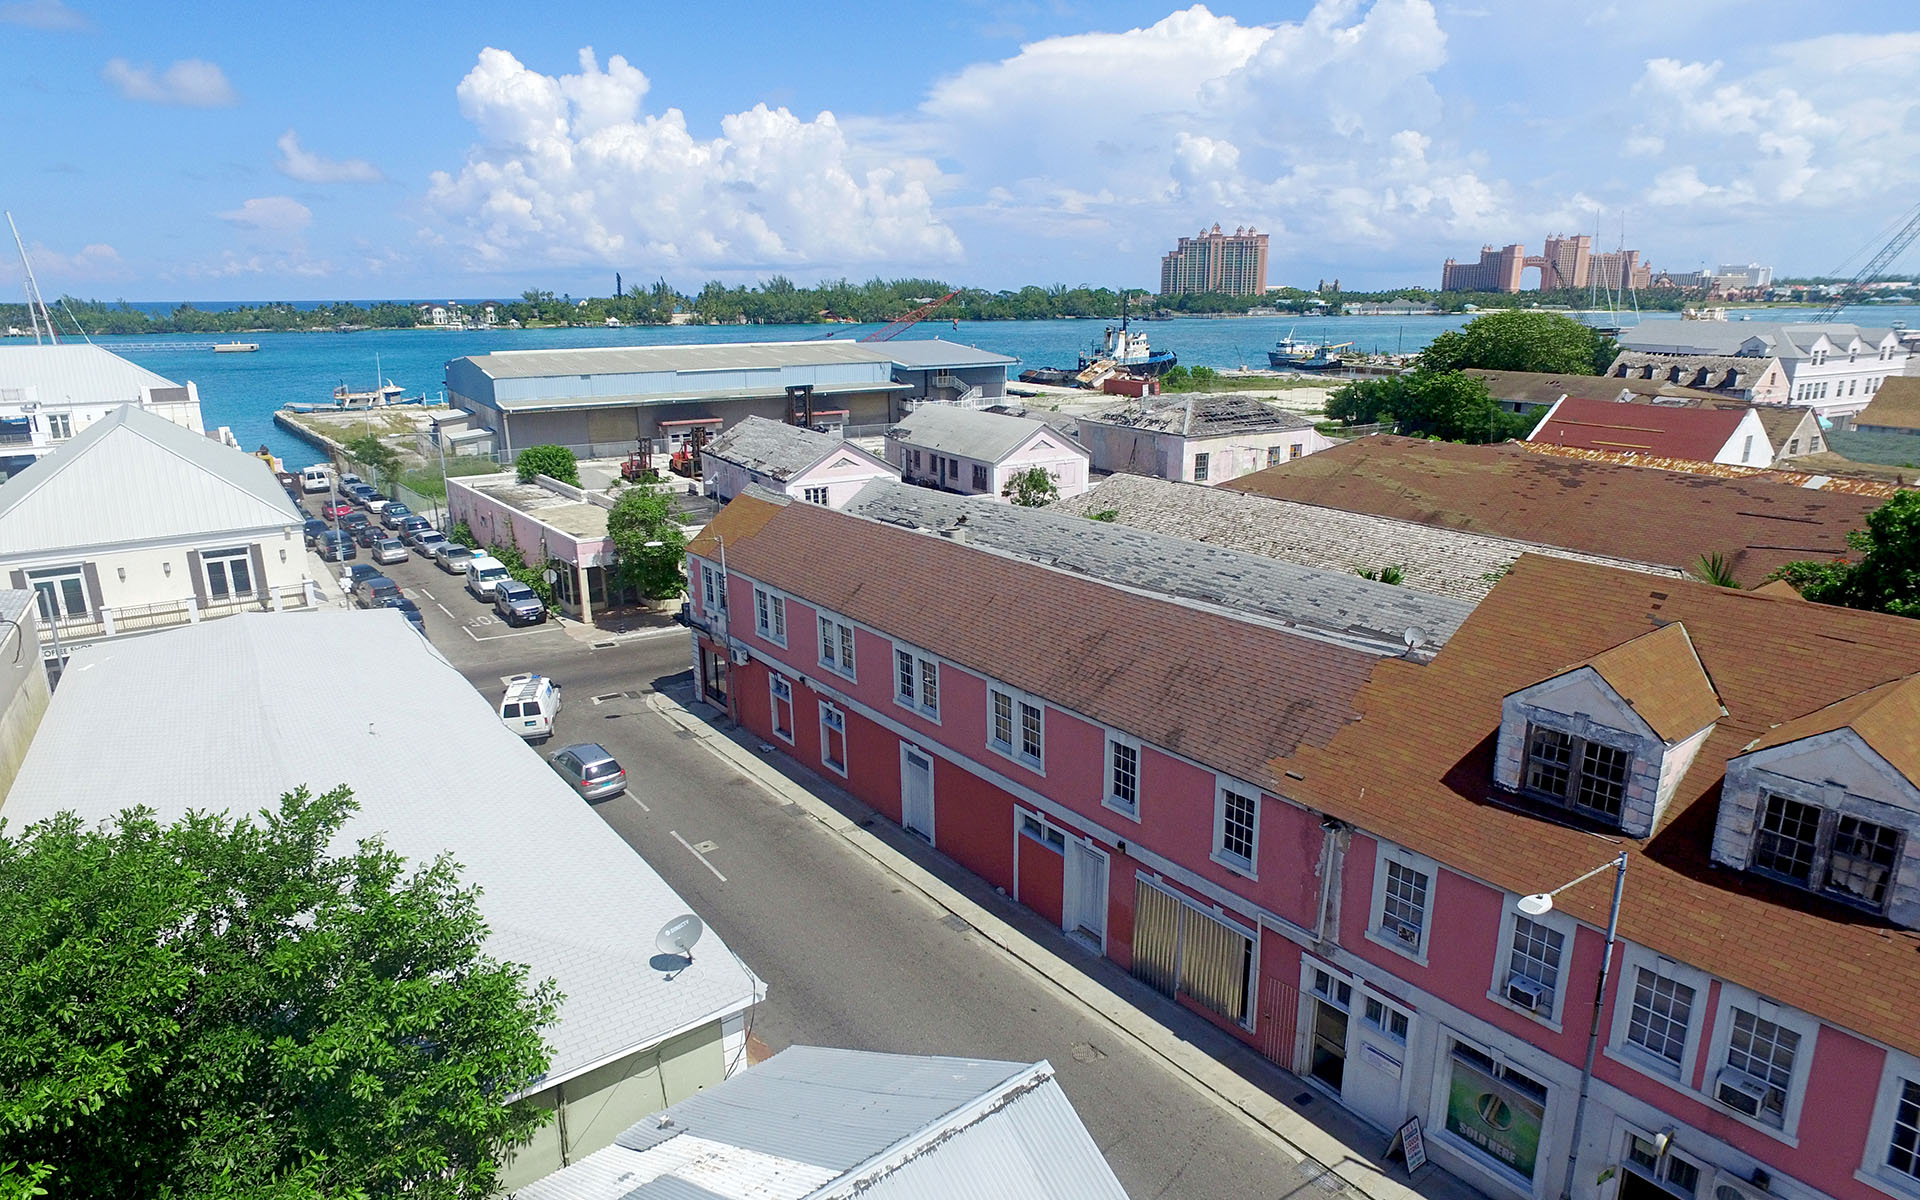 Commercial for Sale at Sealed Bid Auction on Prime Commercial Building - MLS 31320 Bay Street, Nassau And Paradise Island, Bahamas